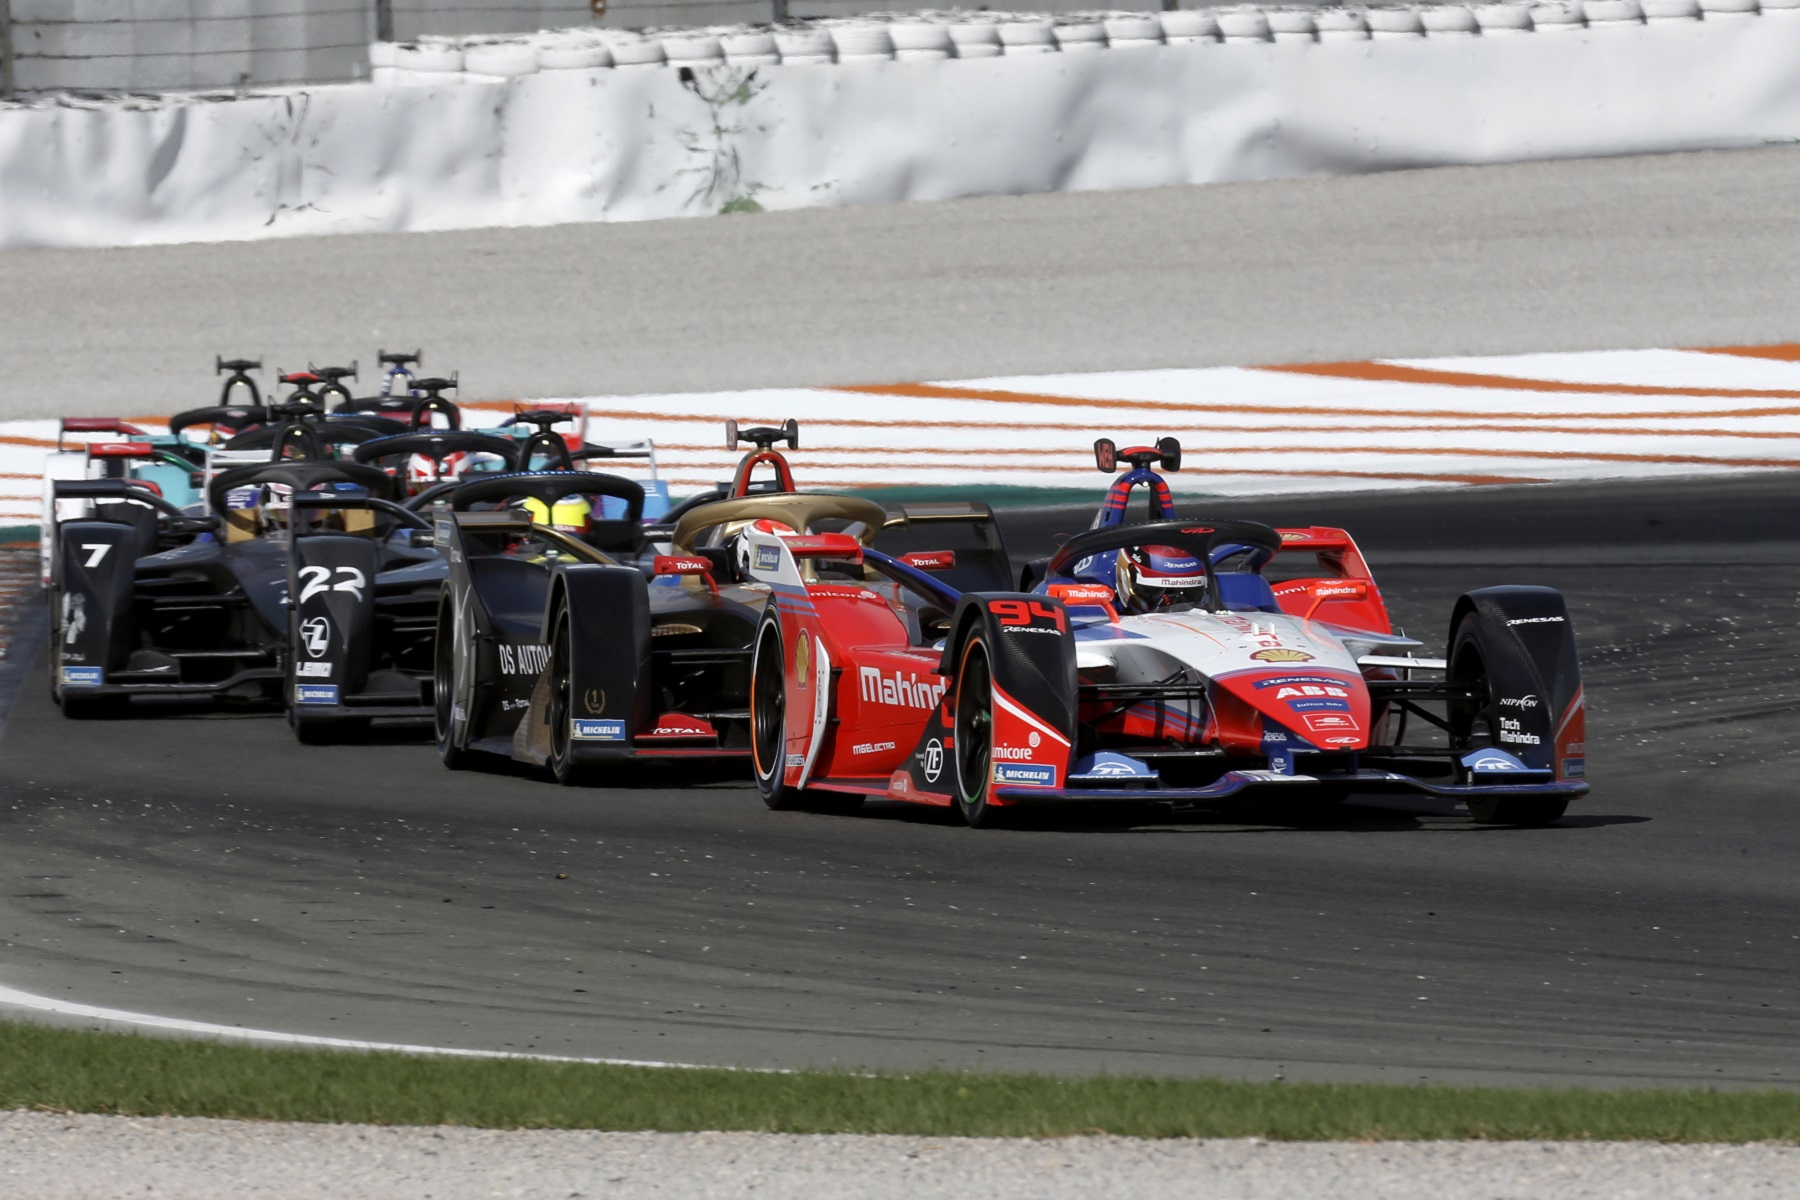 Valencia-Race-Simulation-Pascal-Wehrlein-Mahindra-Racing-leading-the-pack